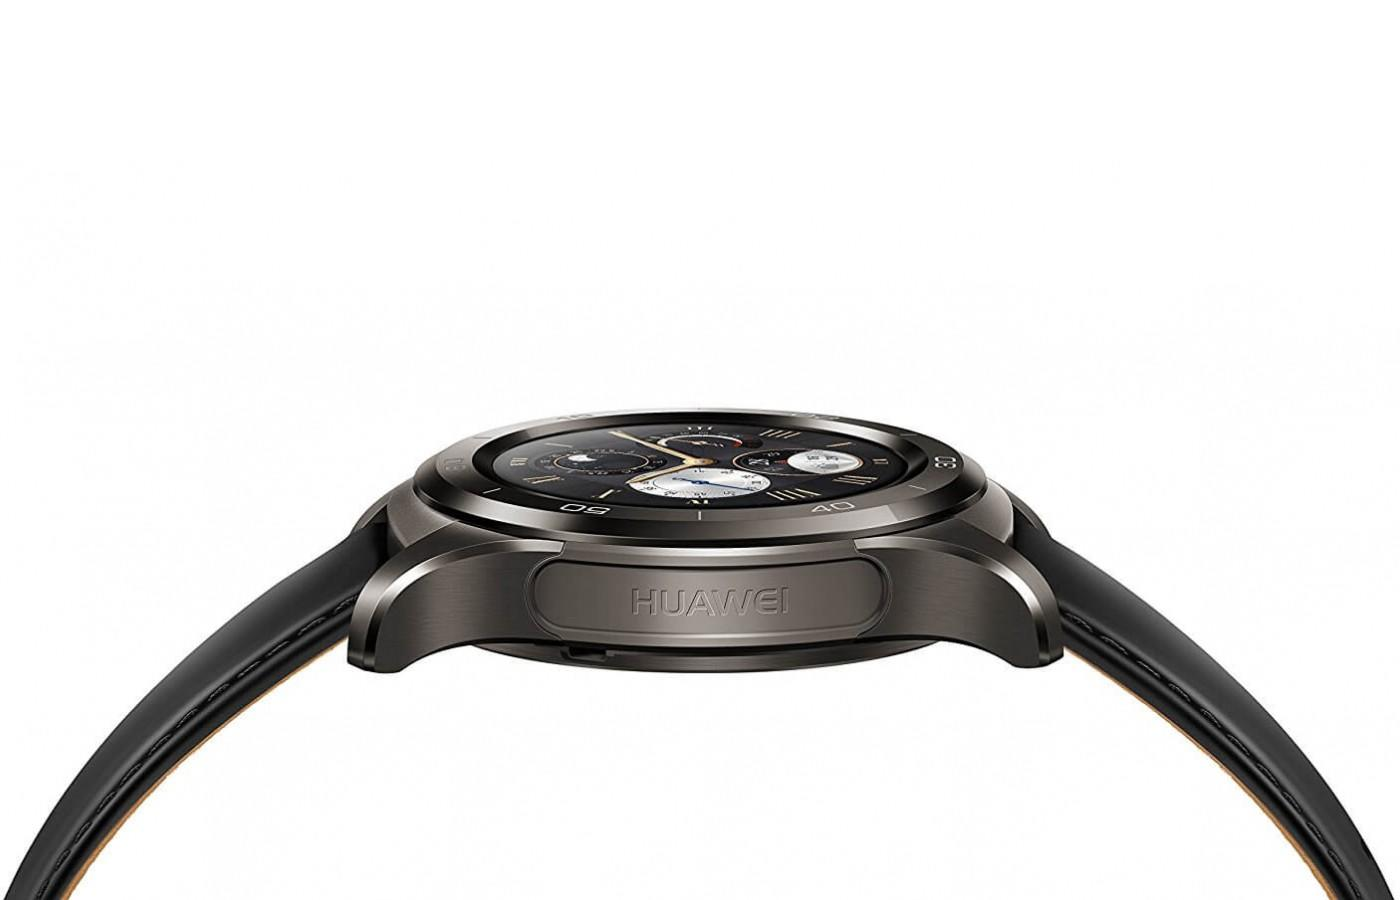 The Huawei Watch 2 Classic has a two-layer strap